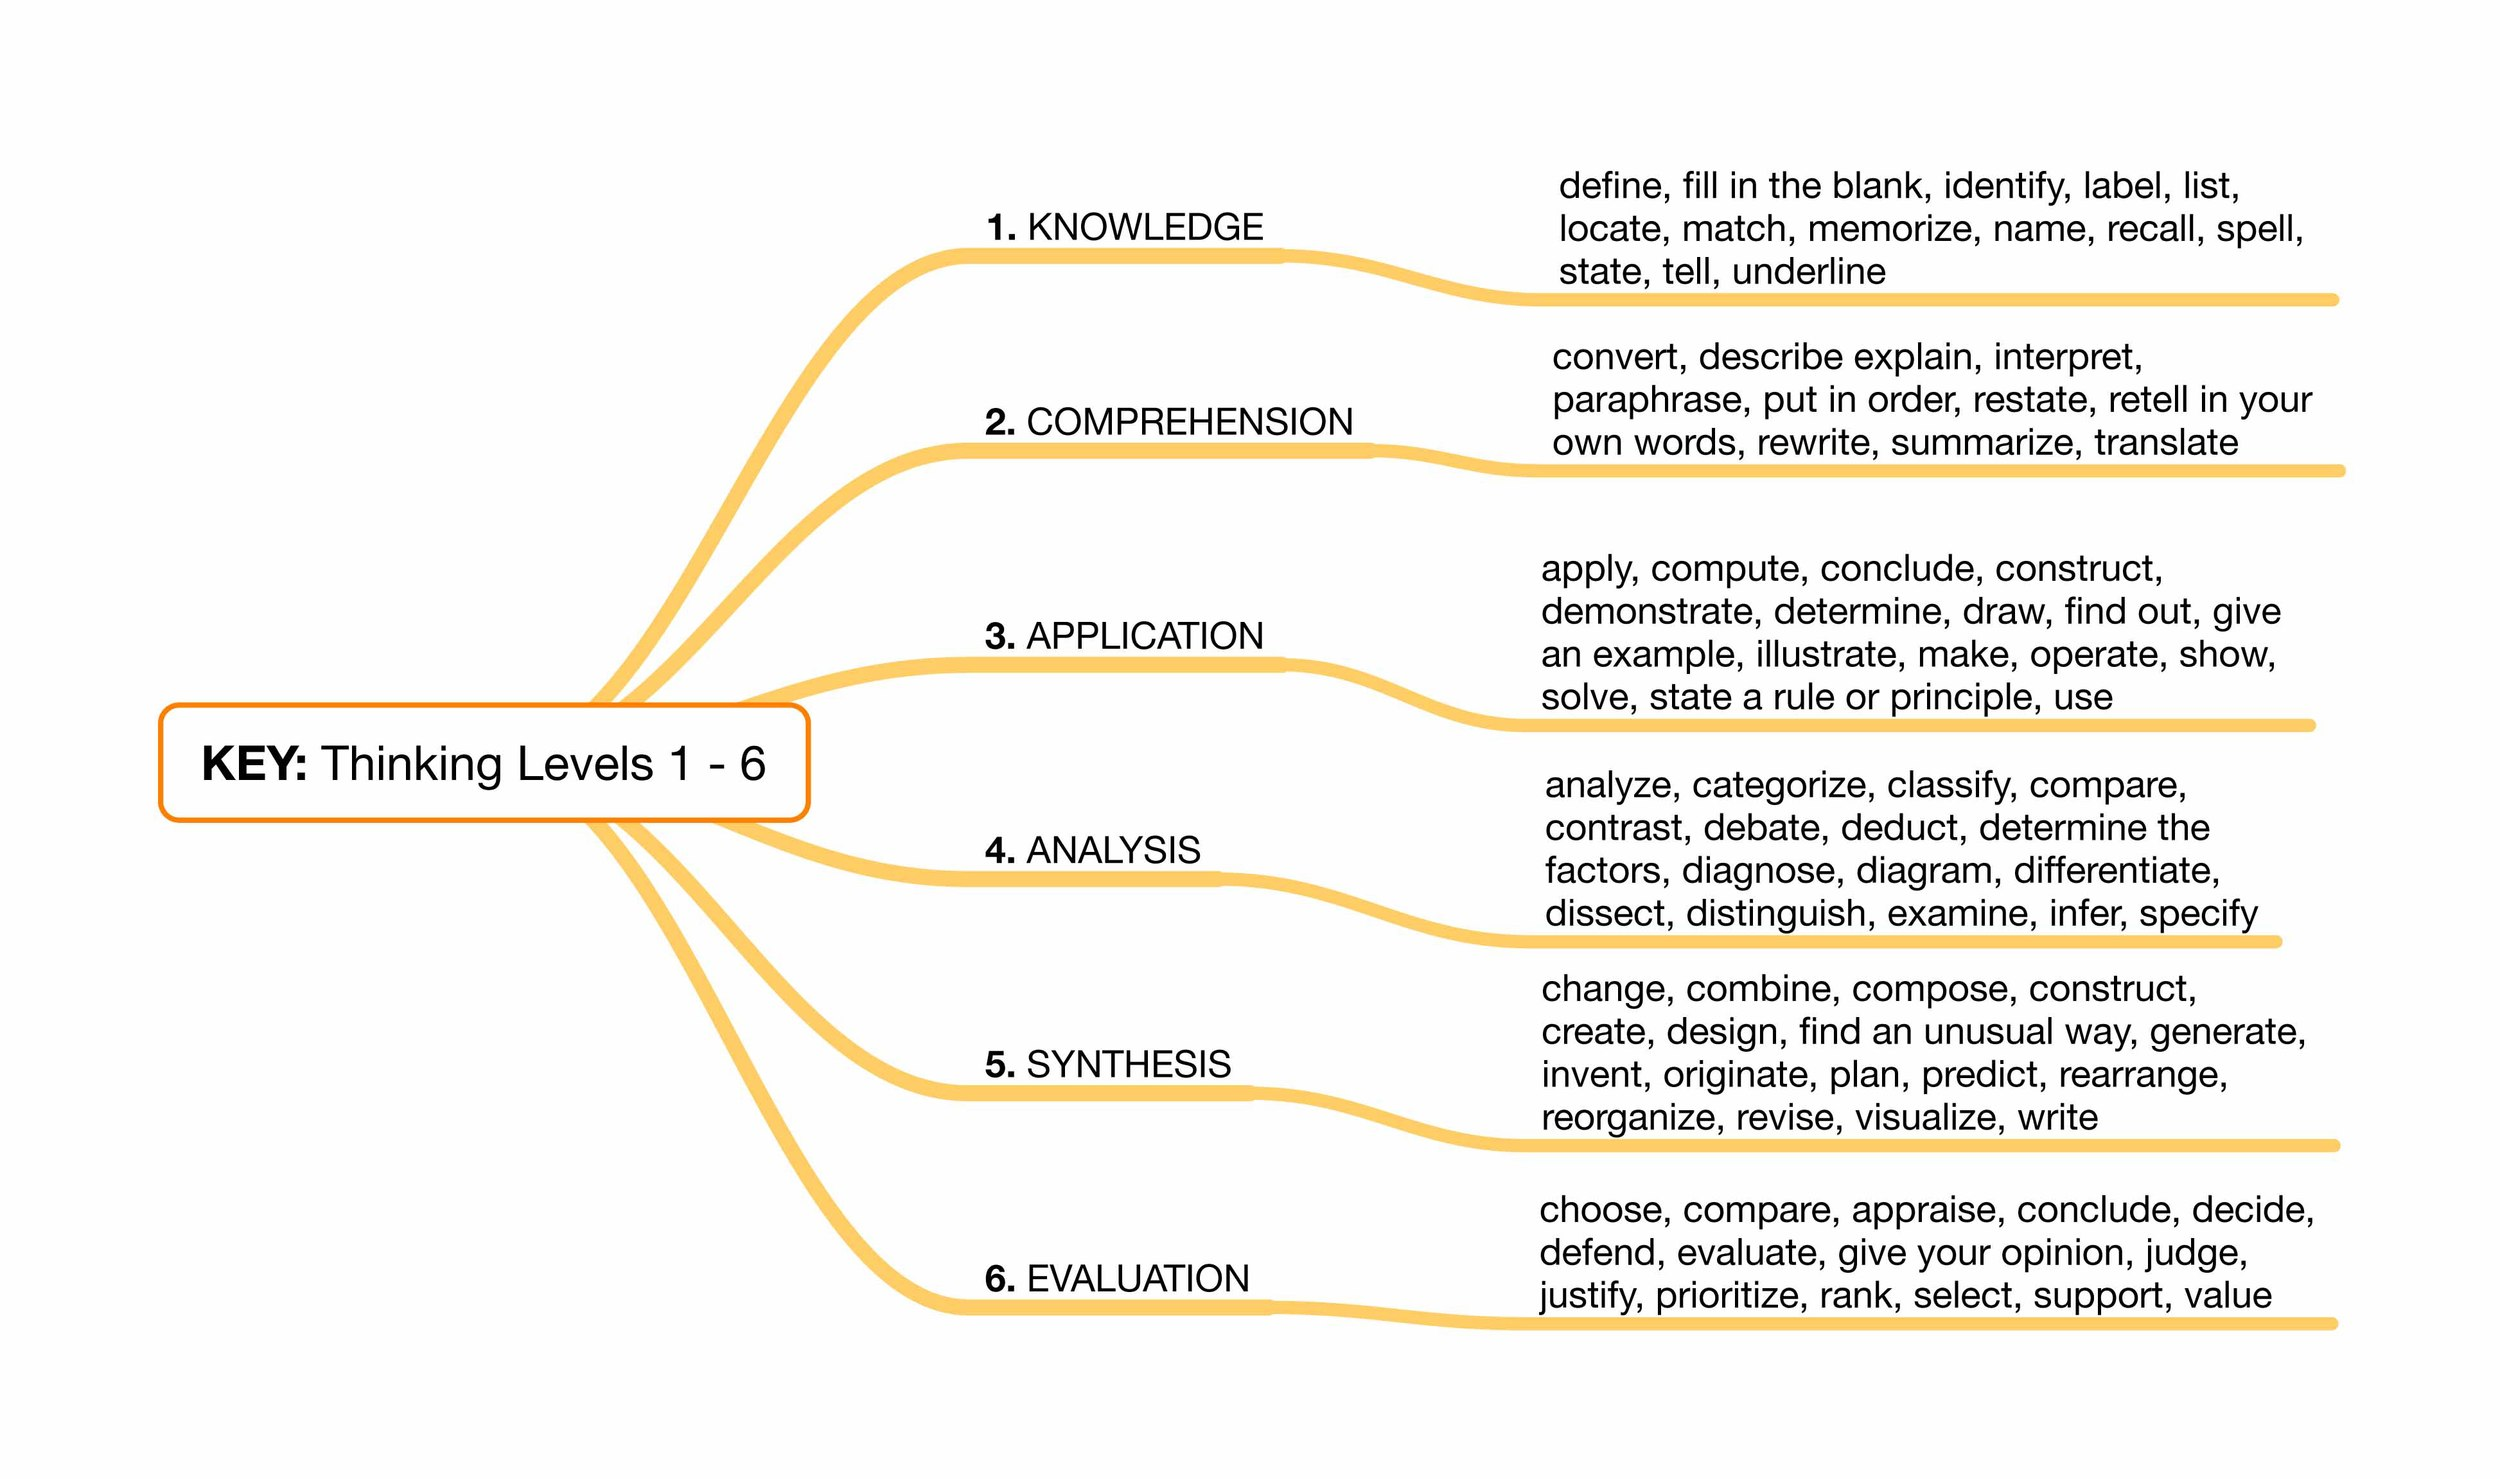 Bloom's Taxonomy Chart of Useful Action Verbs